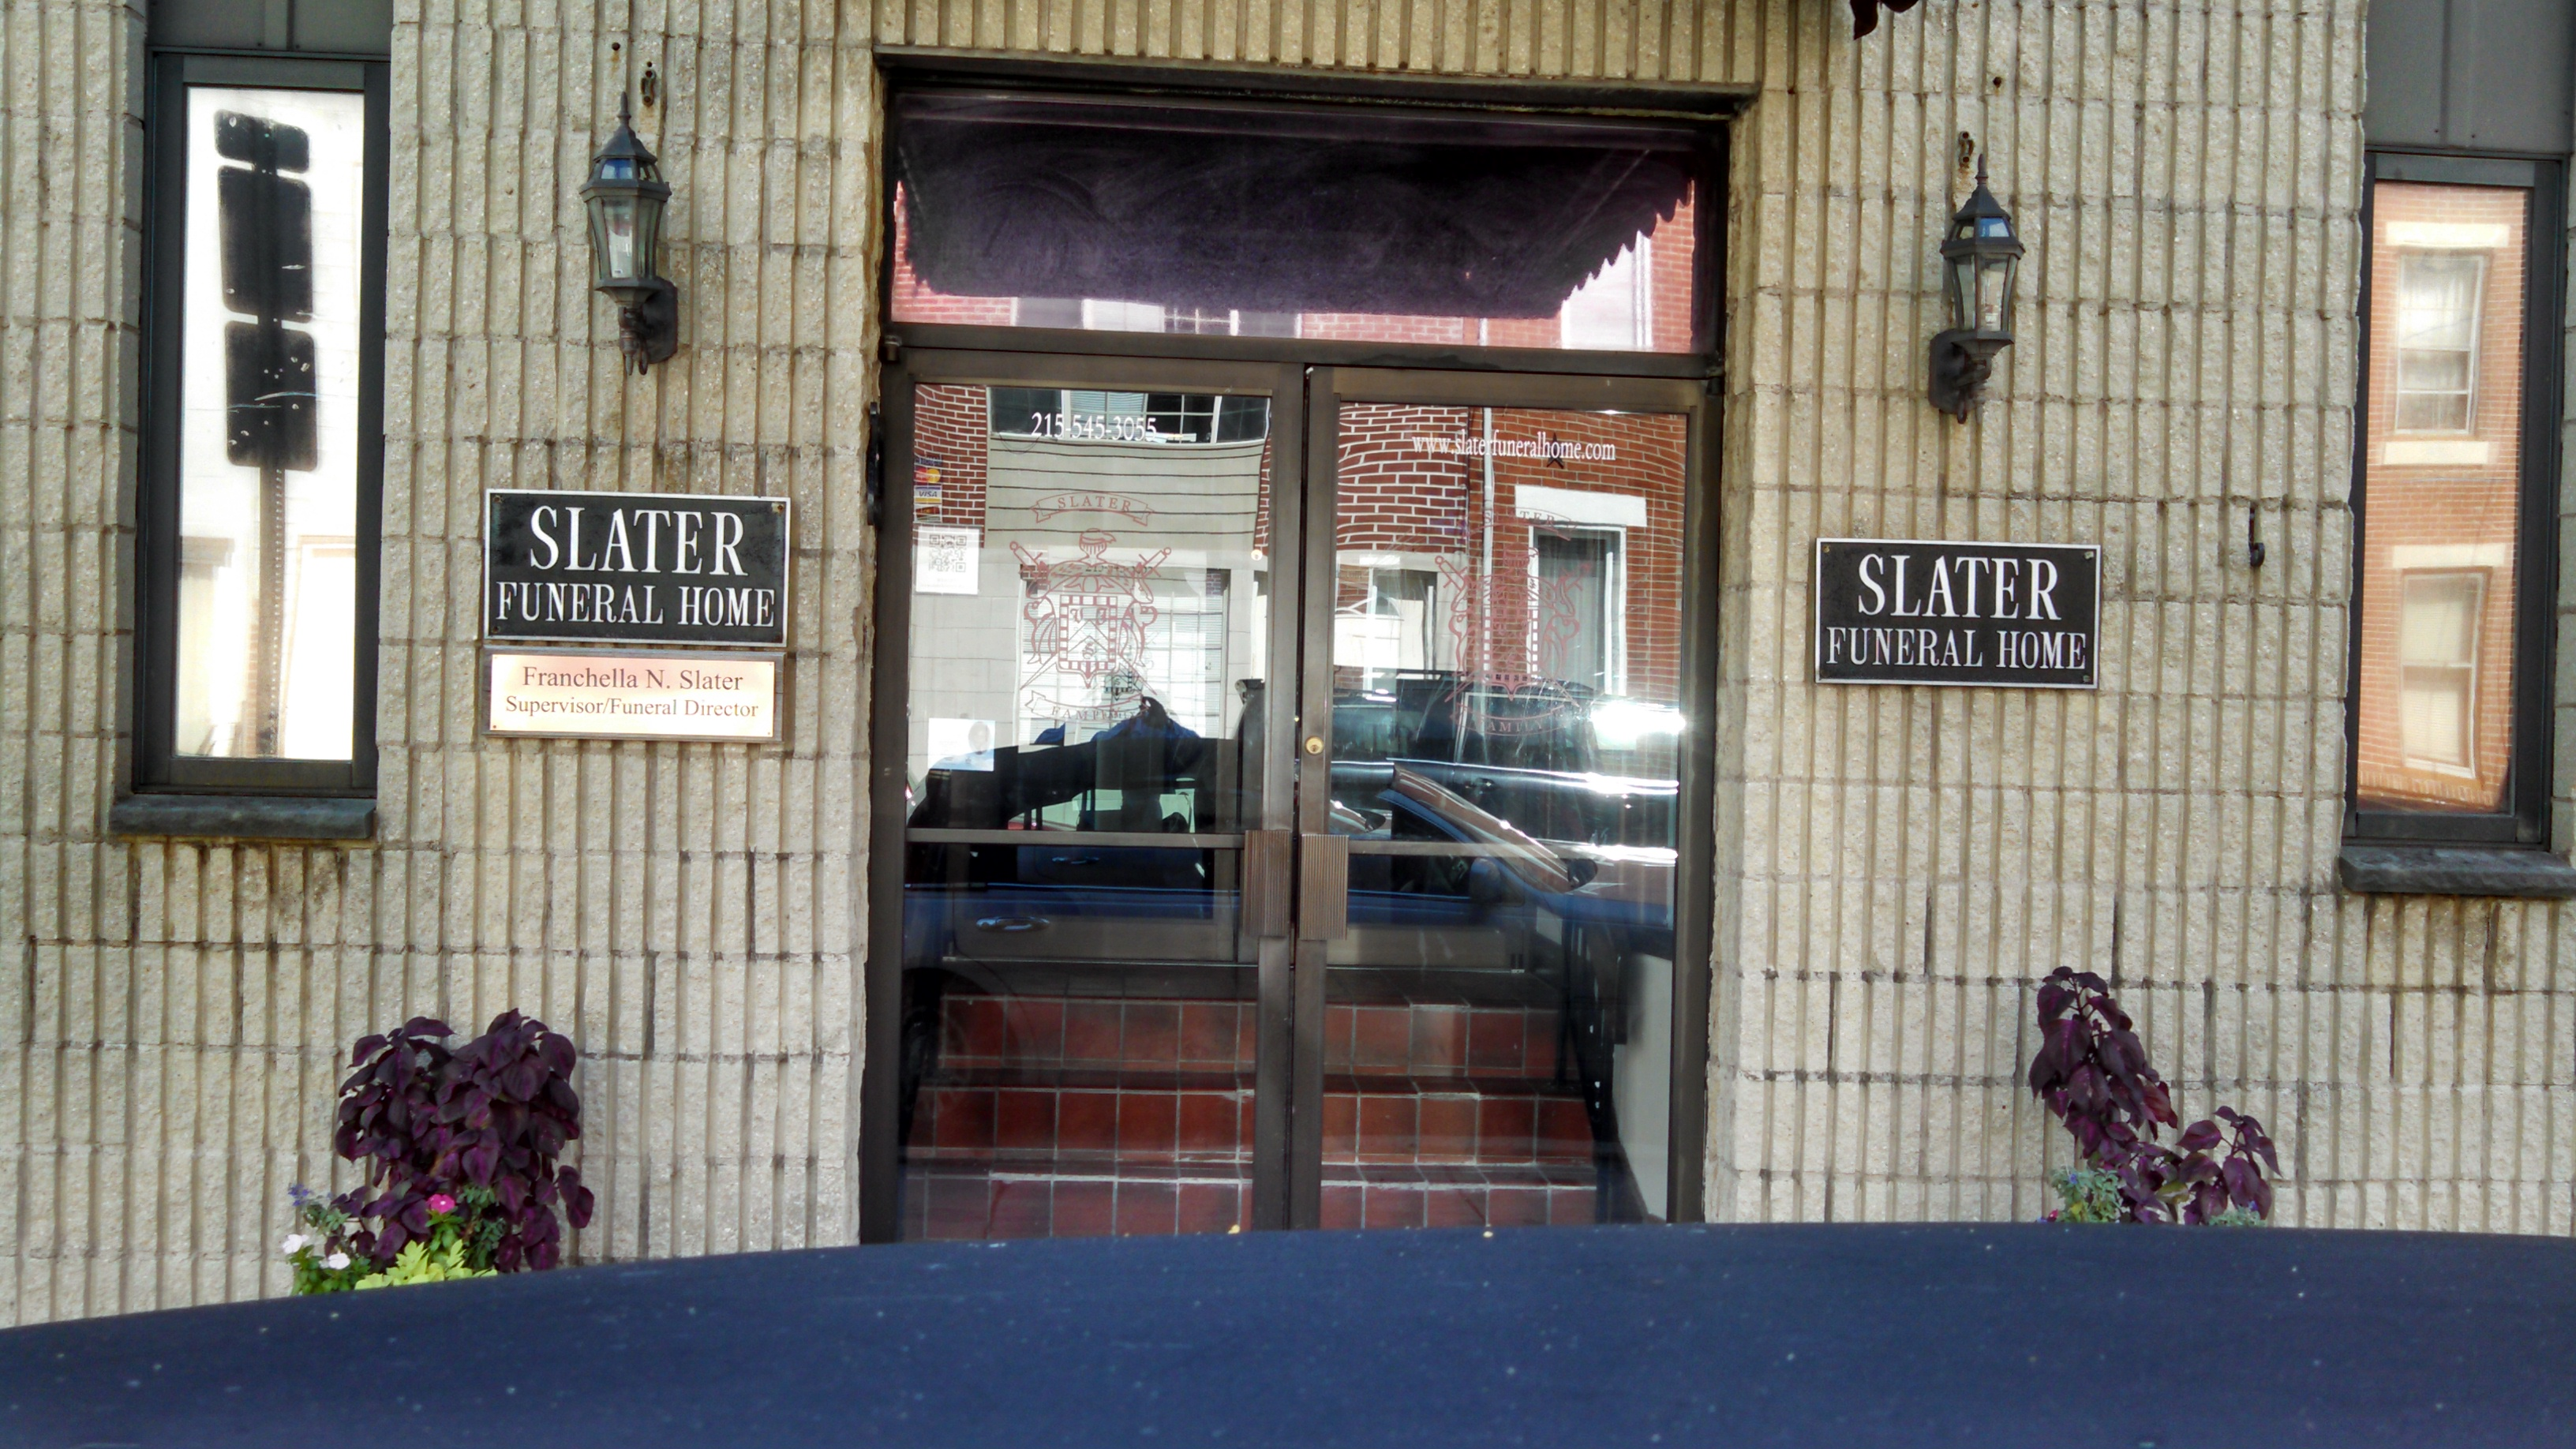 Slater Funeral Home